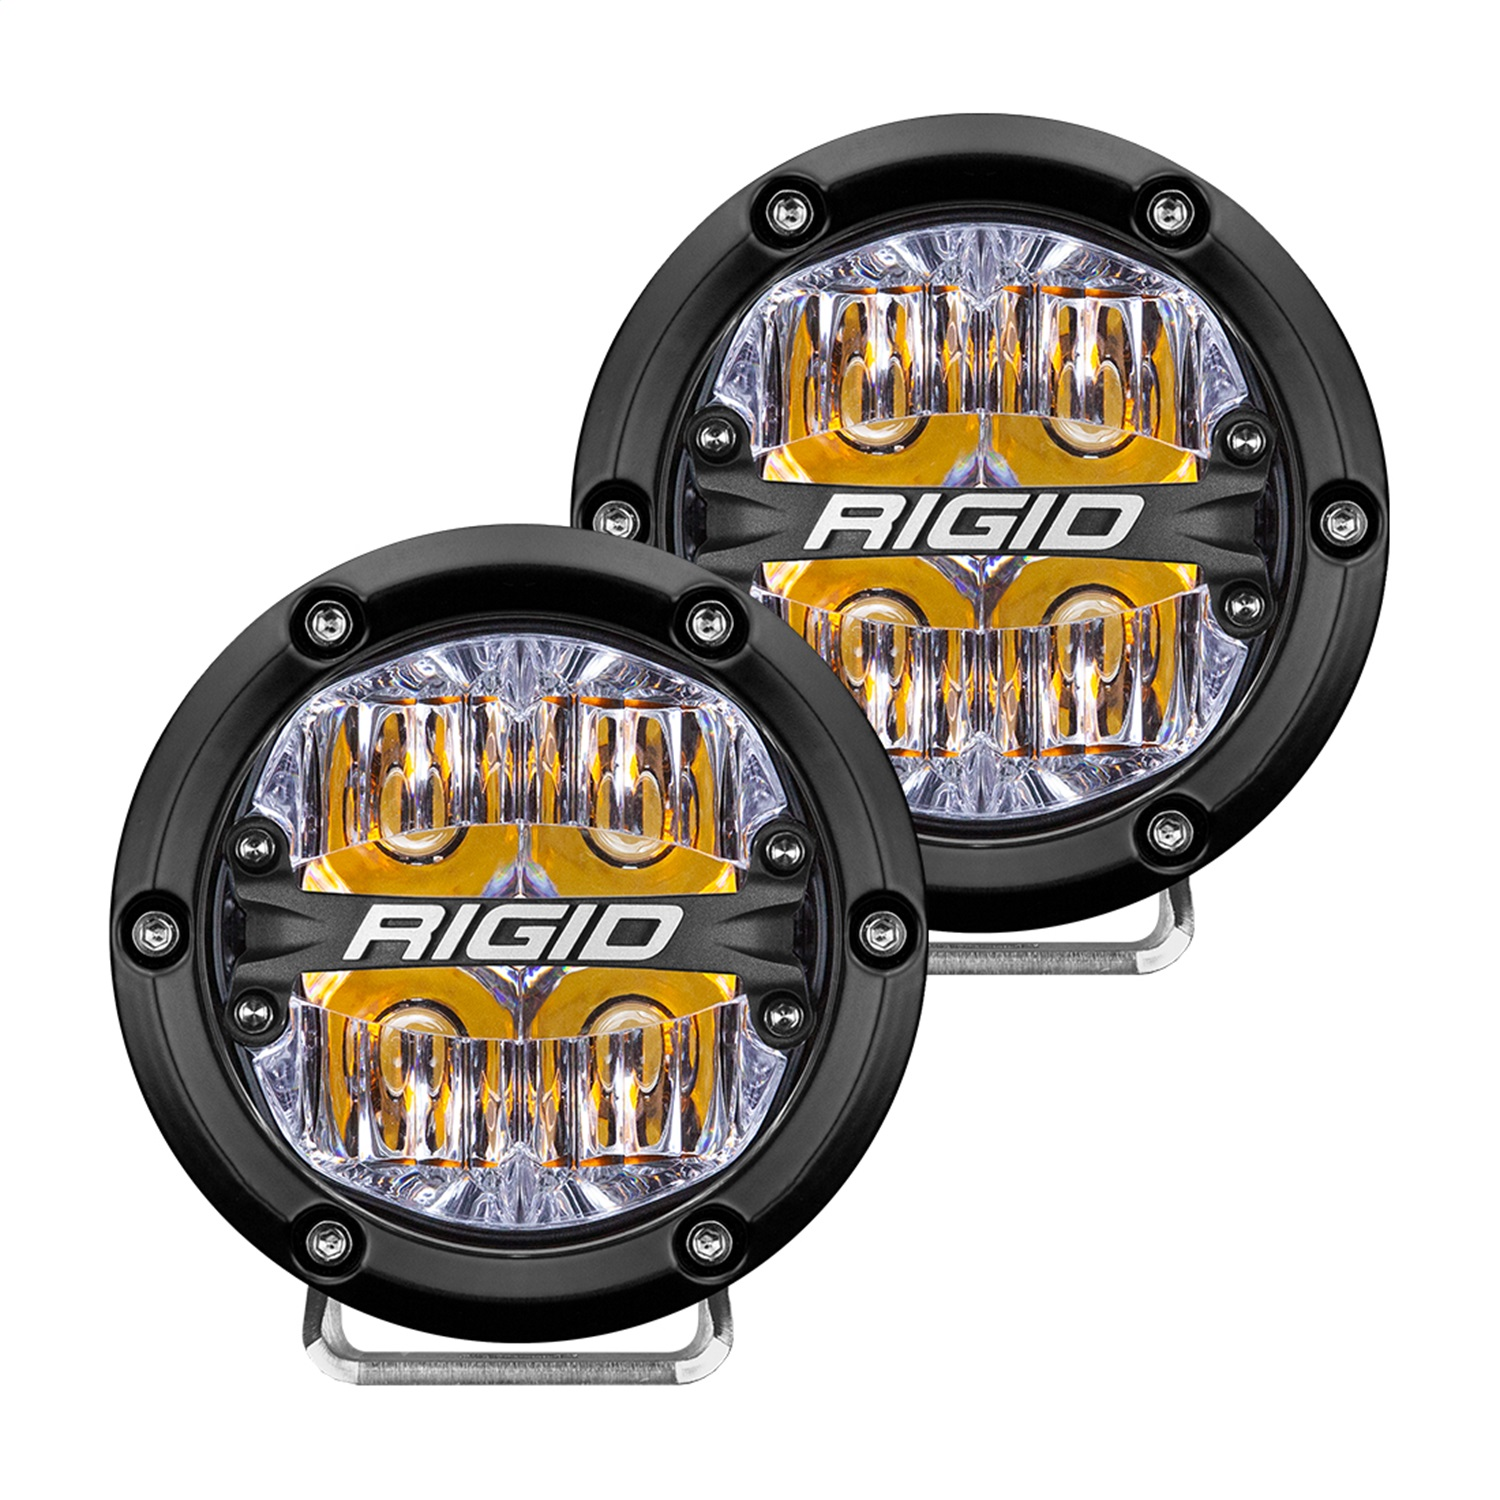 360-Series LED Off-Road Light, 4 in., Drive Beam, For Moderate Speed 20-50 MPH Plus, Amber Backlight, Pair